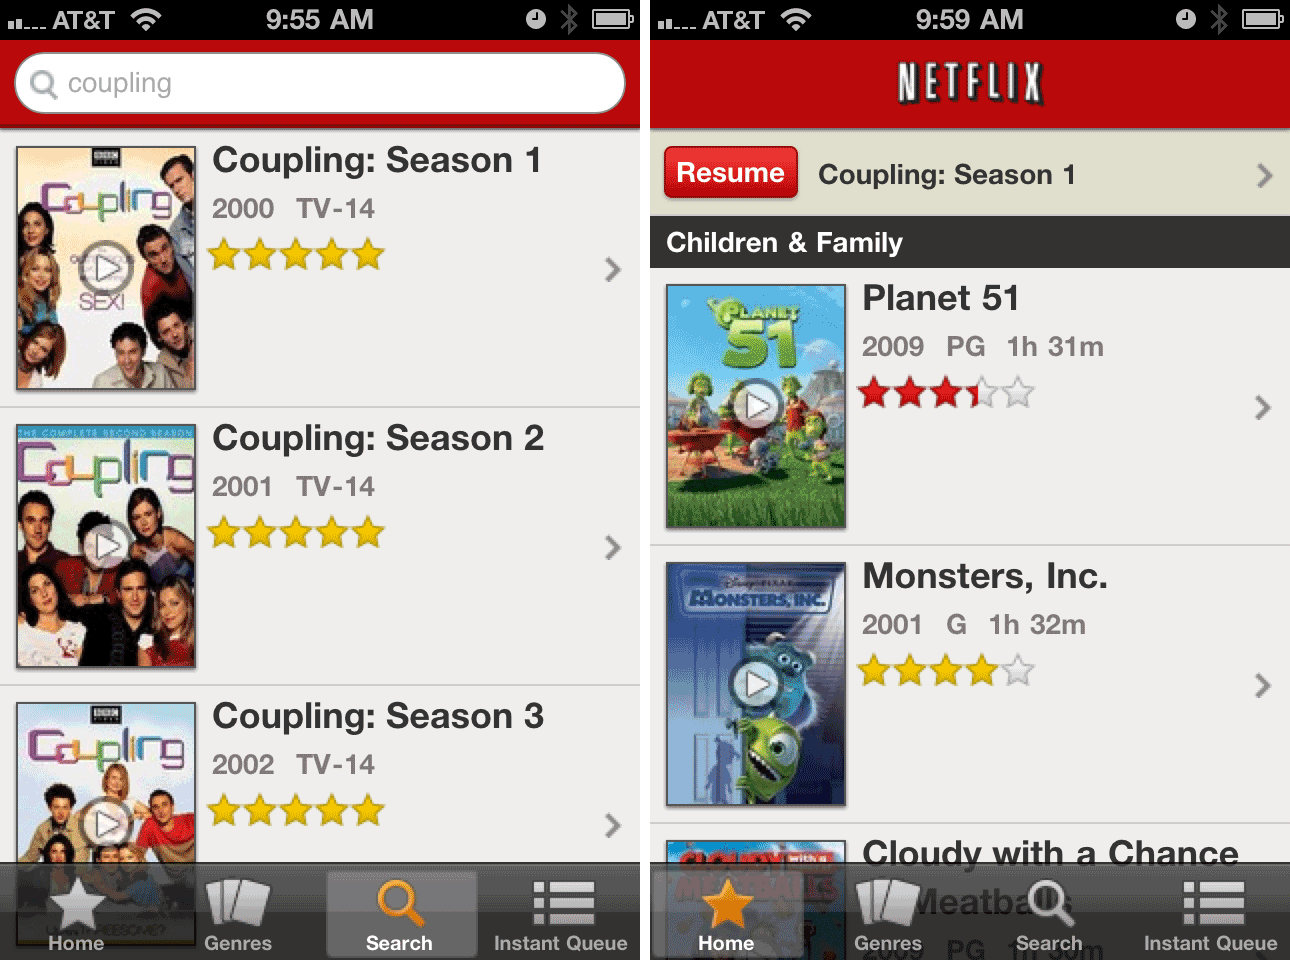 Netflix App Now Available for iPhone and iPod touch - TidBITS